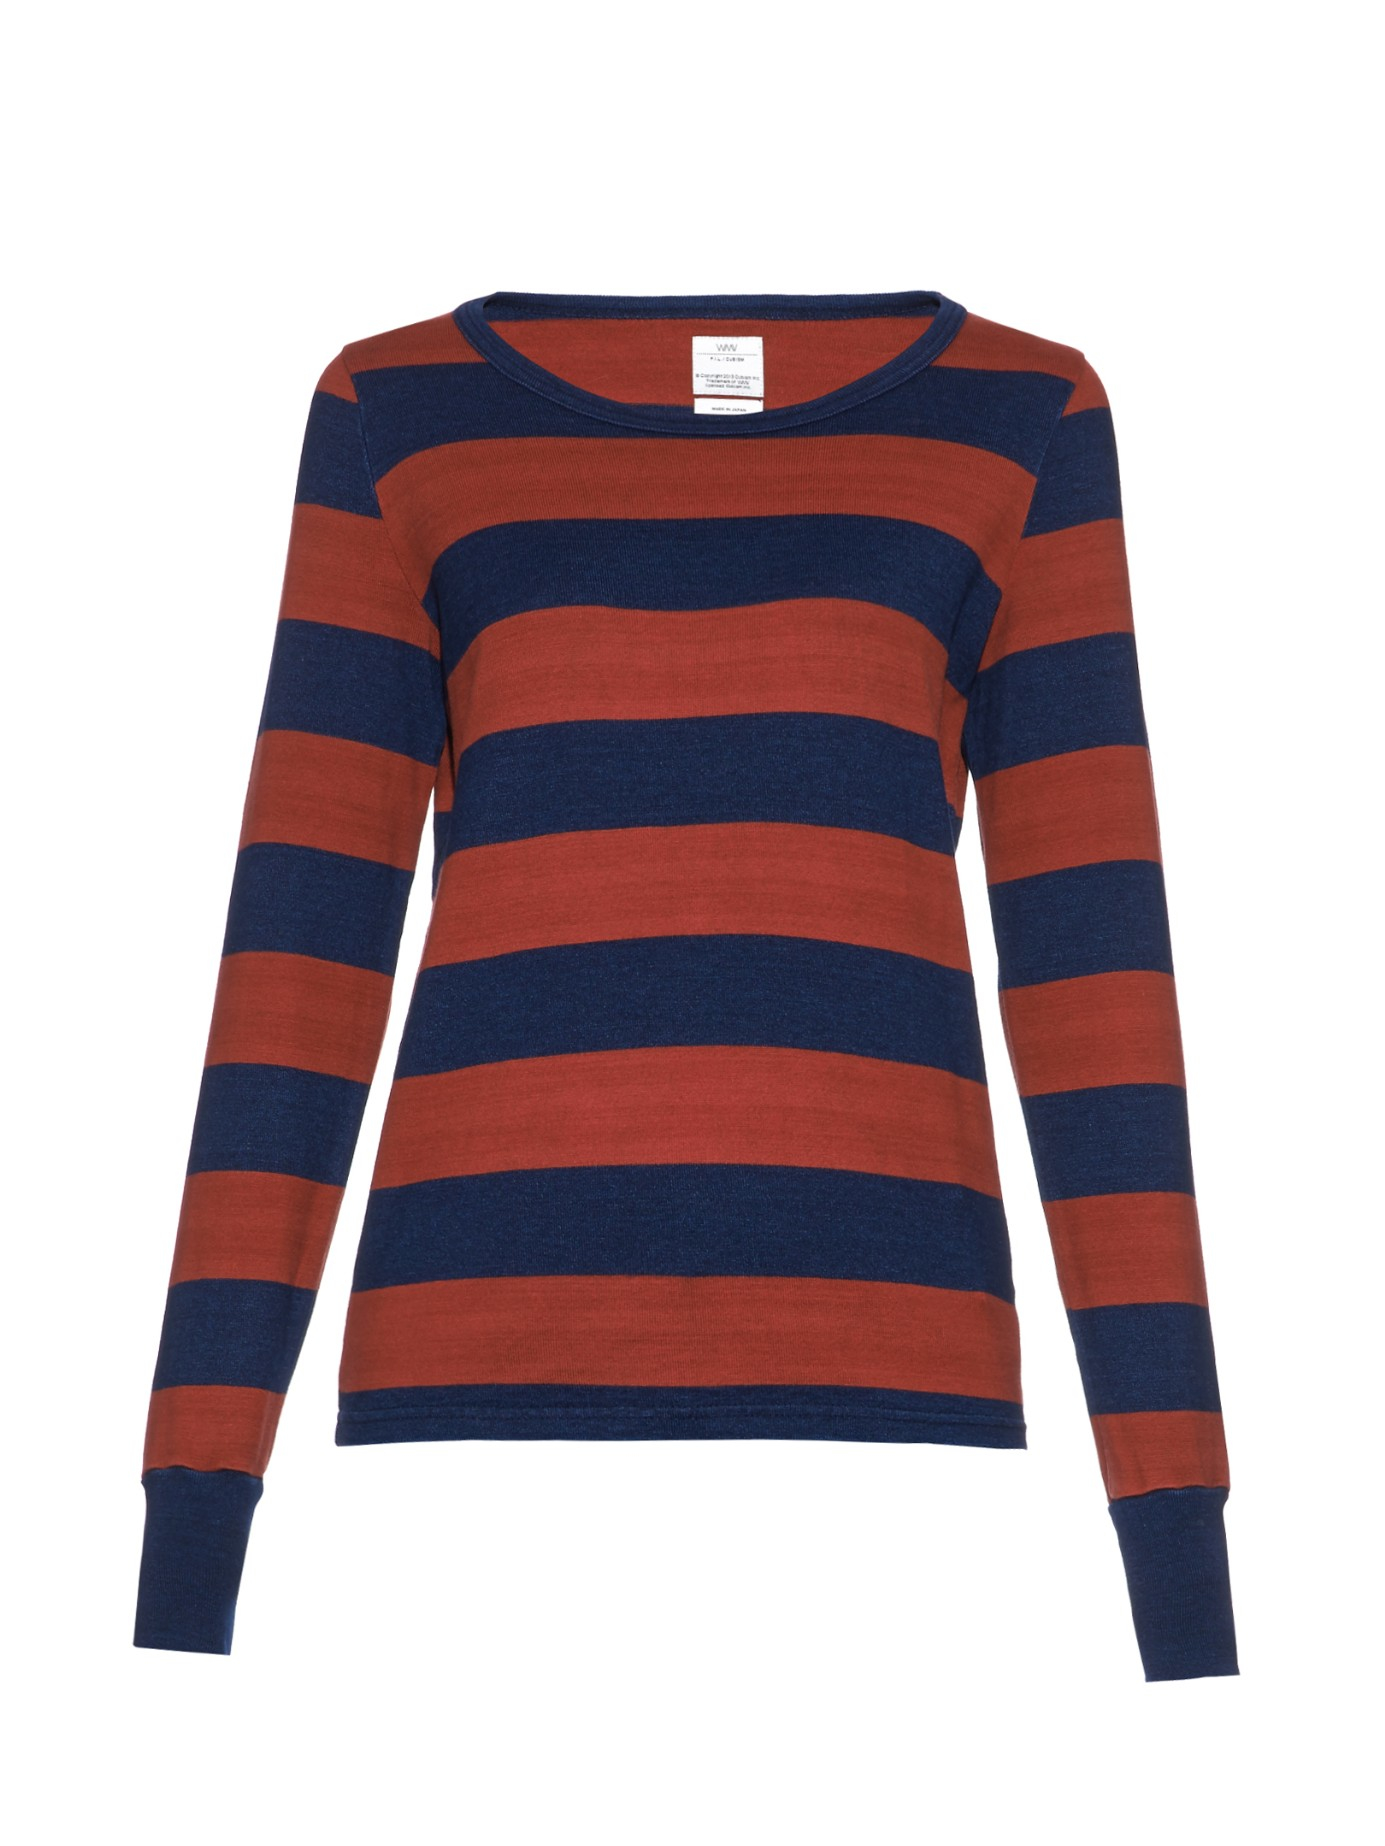 Visvim long sleeved striped t shirt in blue red multi for Blue and white striped long sleeve t shirt